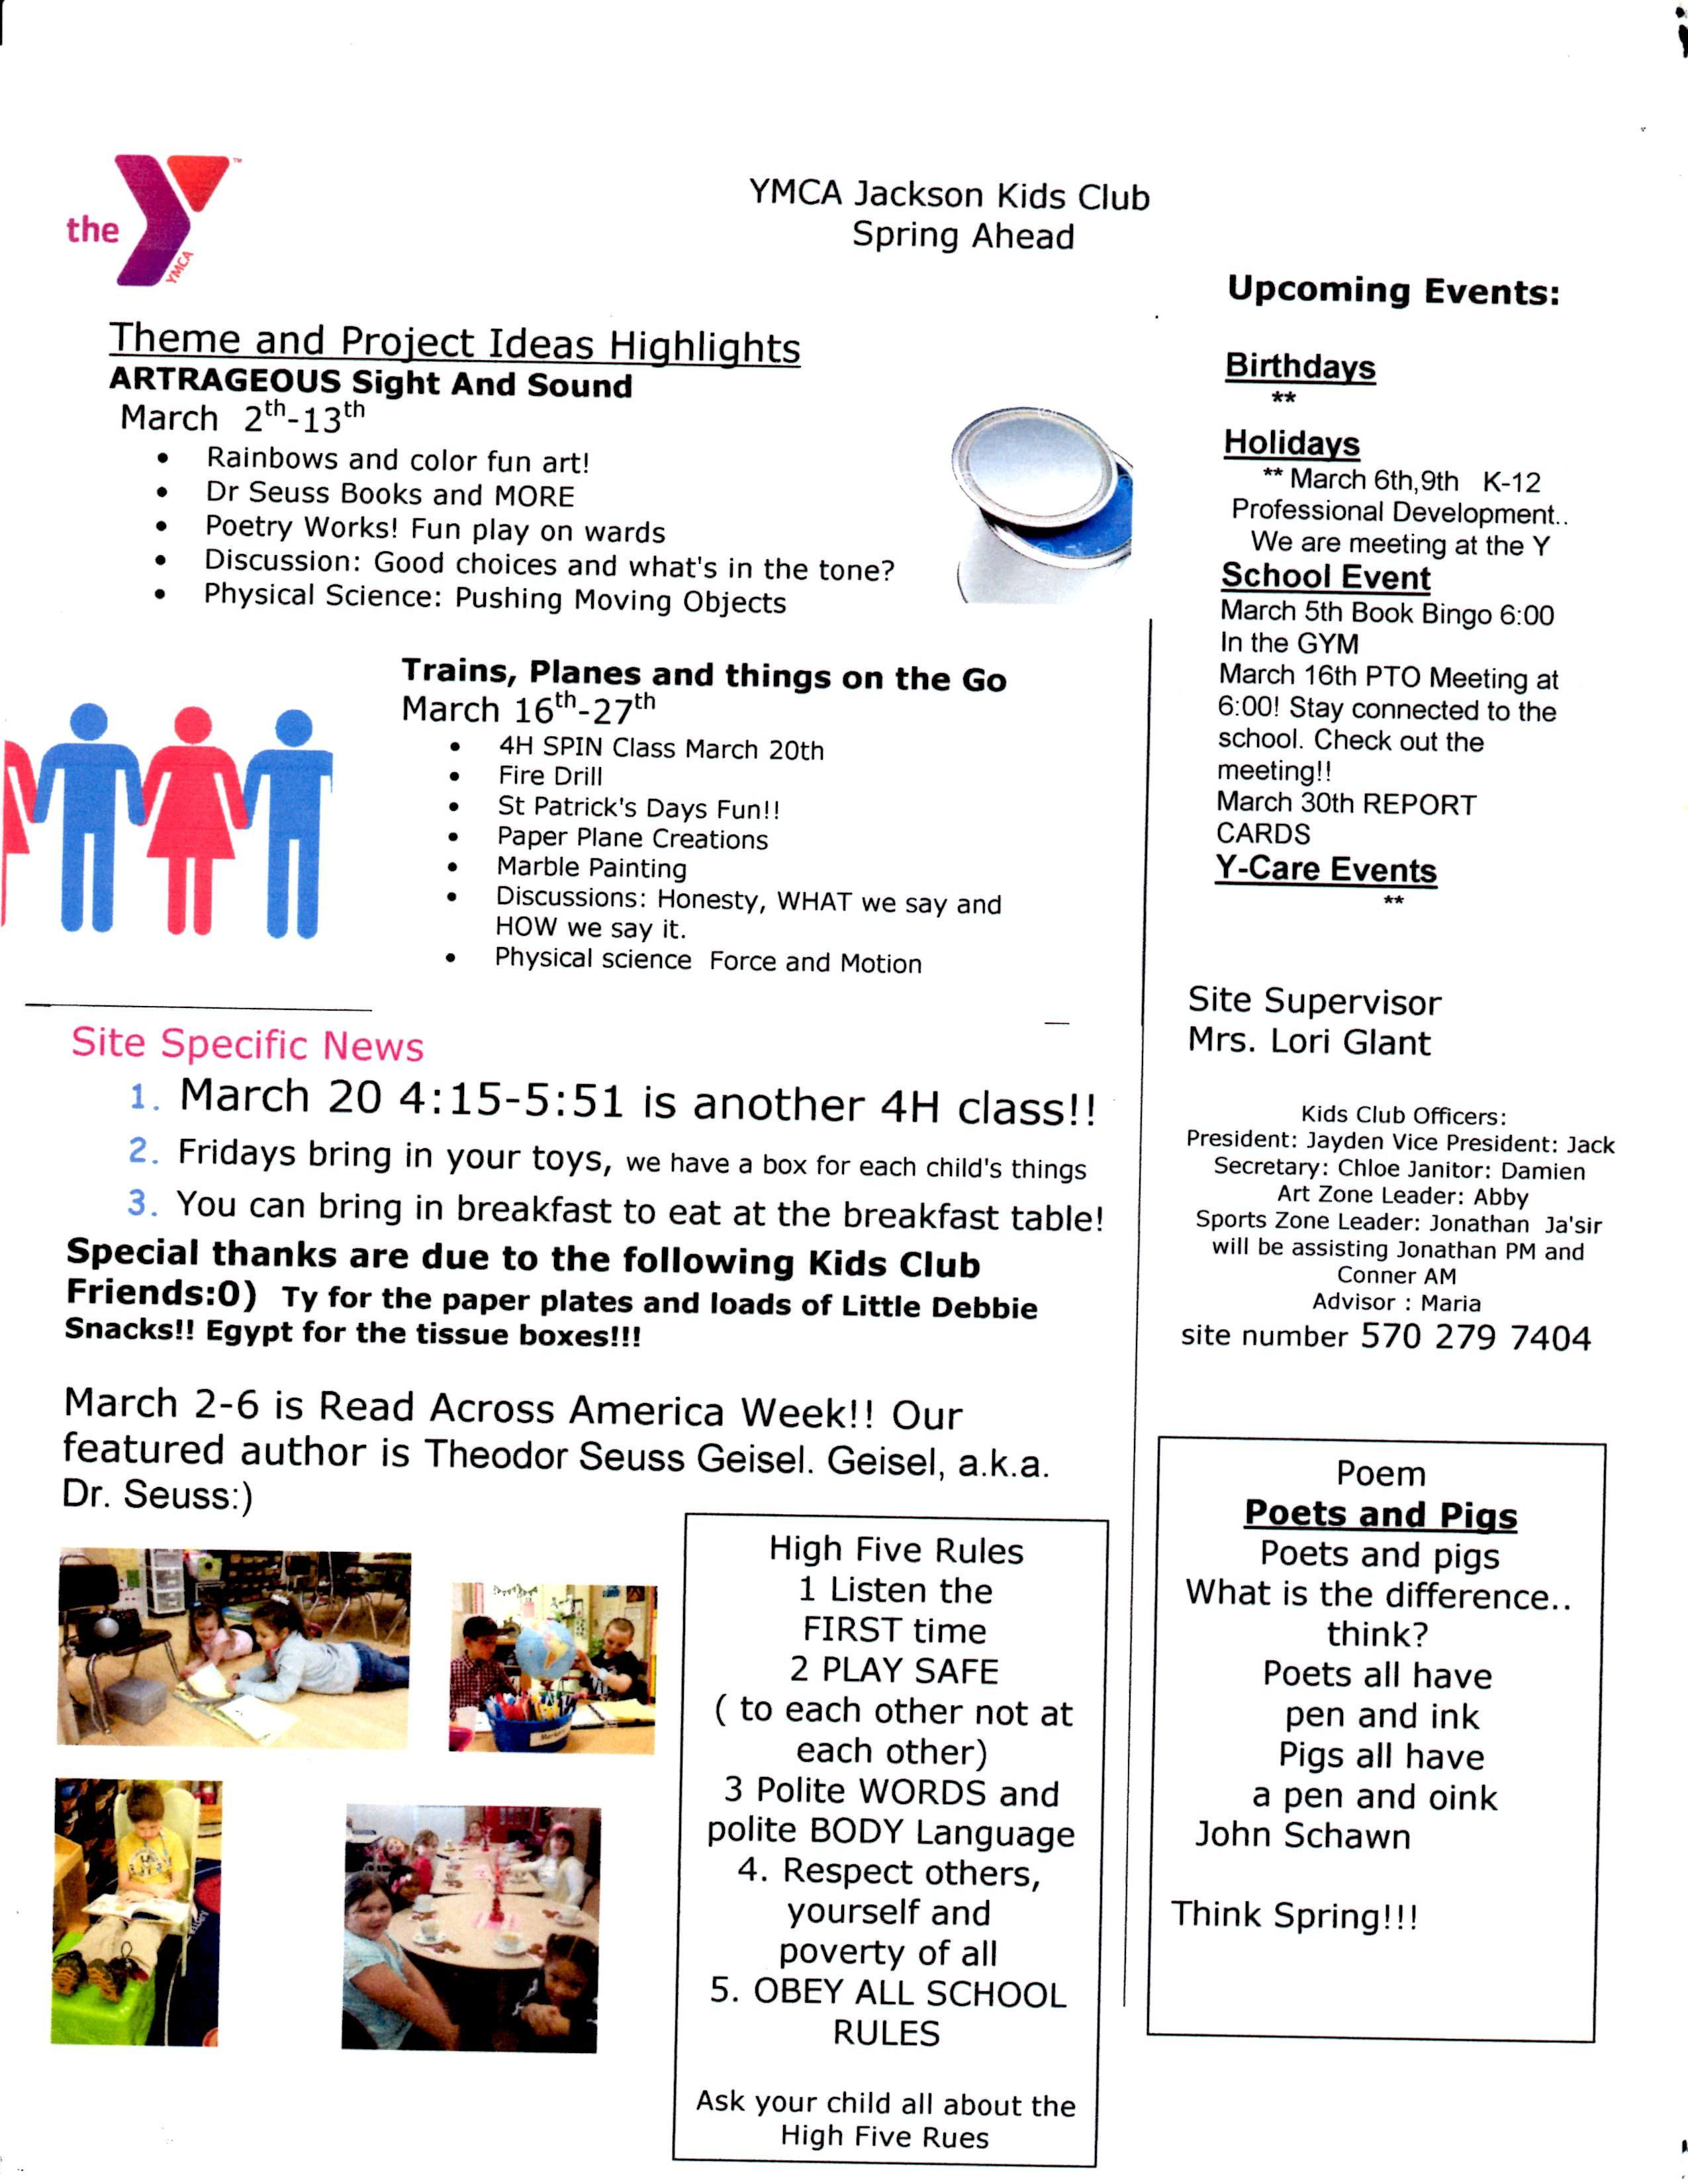 sample of my newsletter for the kids club the ymca school age sample of my newsletter for the kids club the ymca school age before and after school